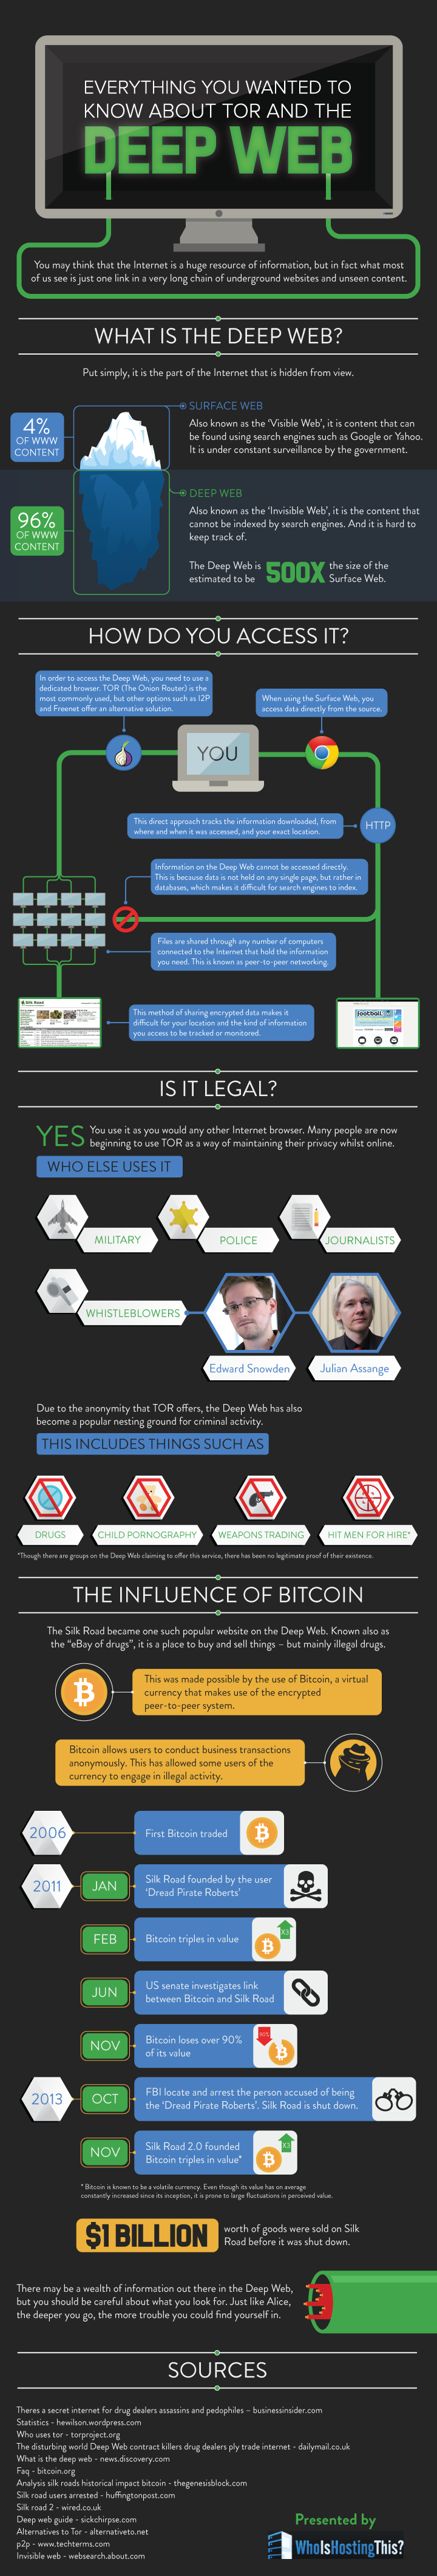 infrogra me | Global Infographic Community